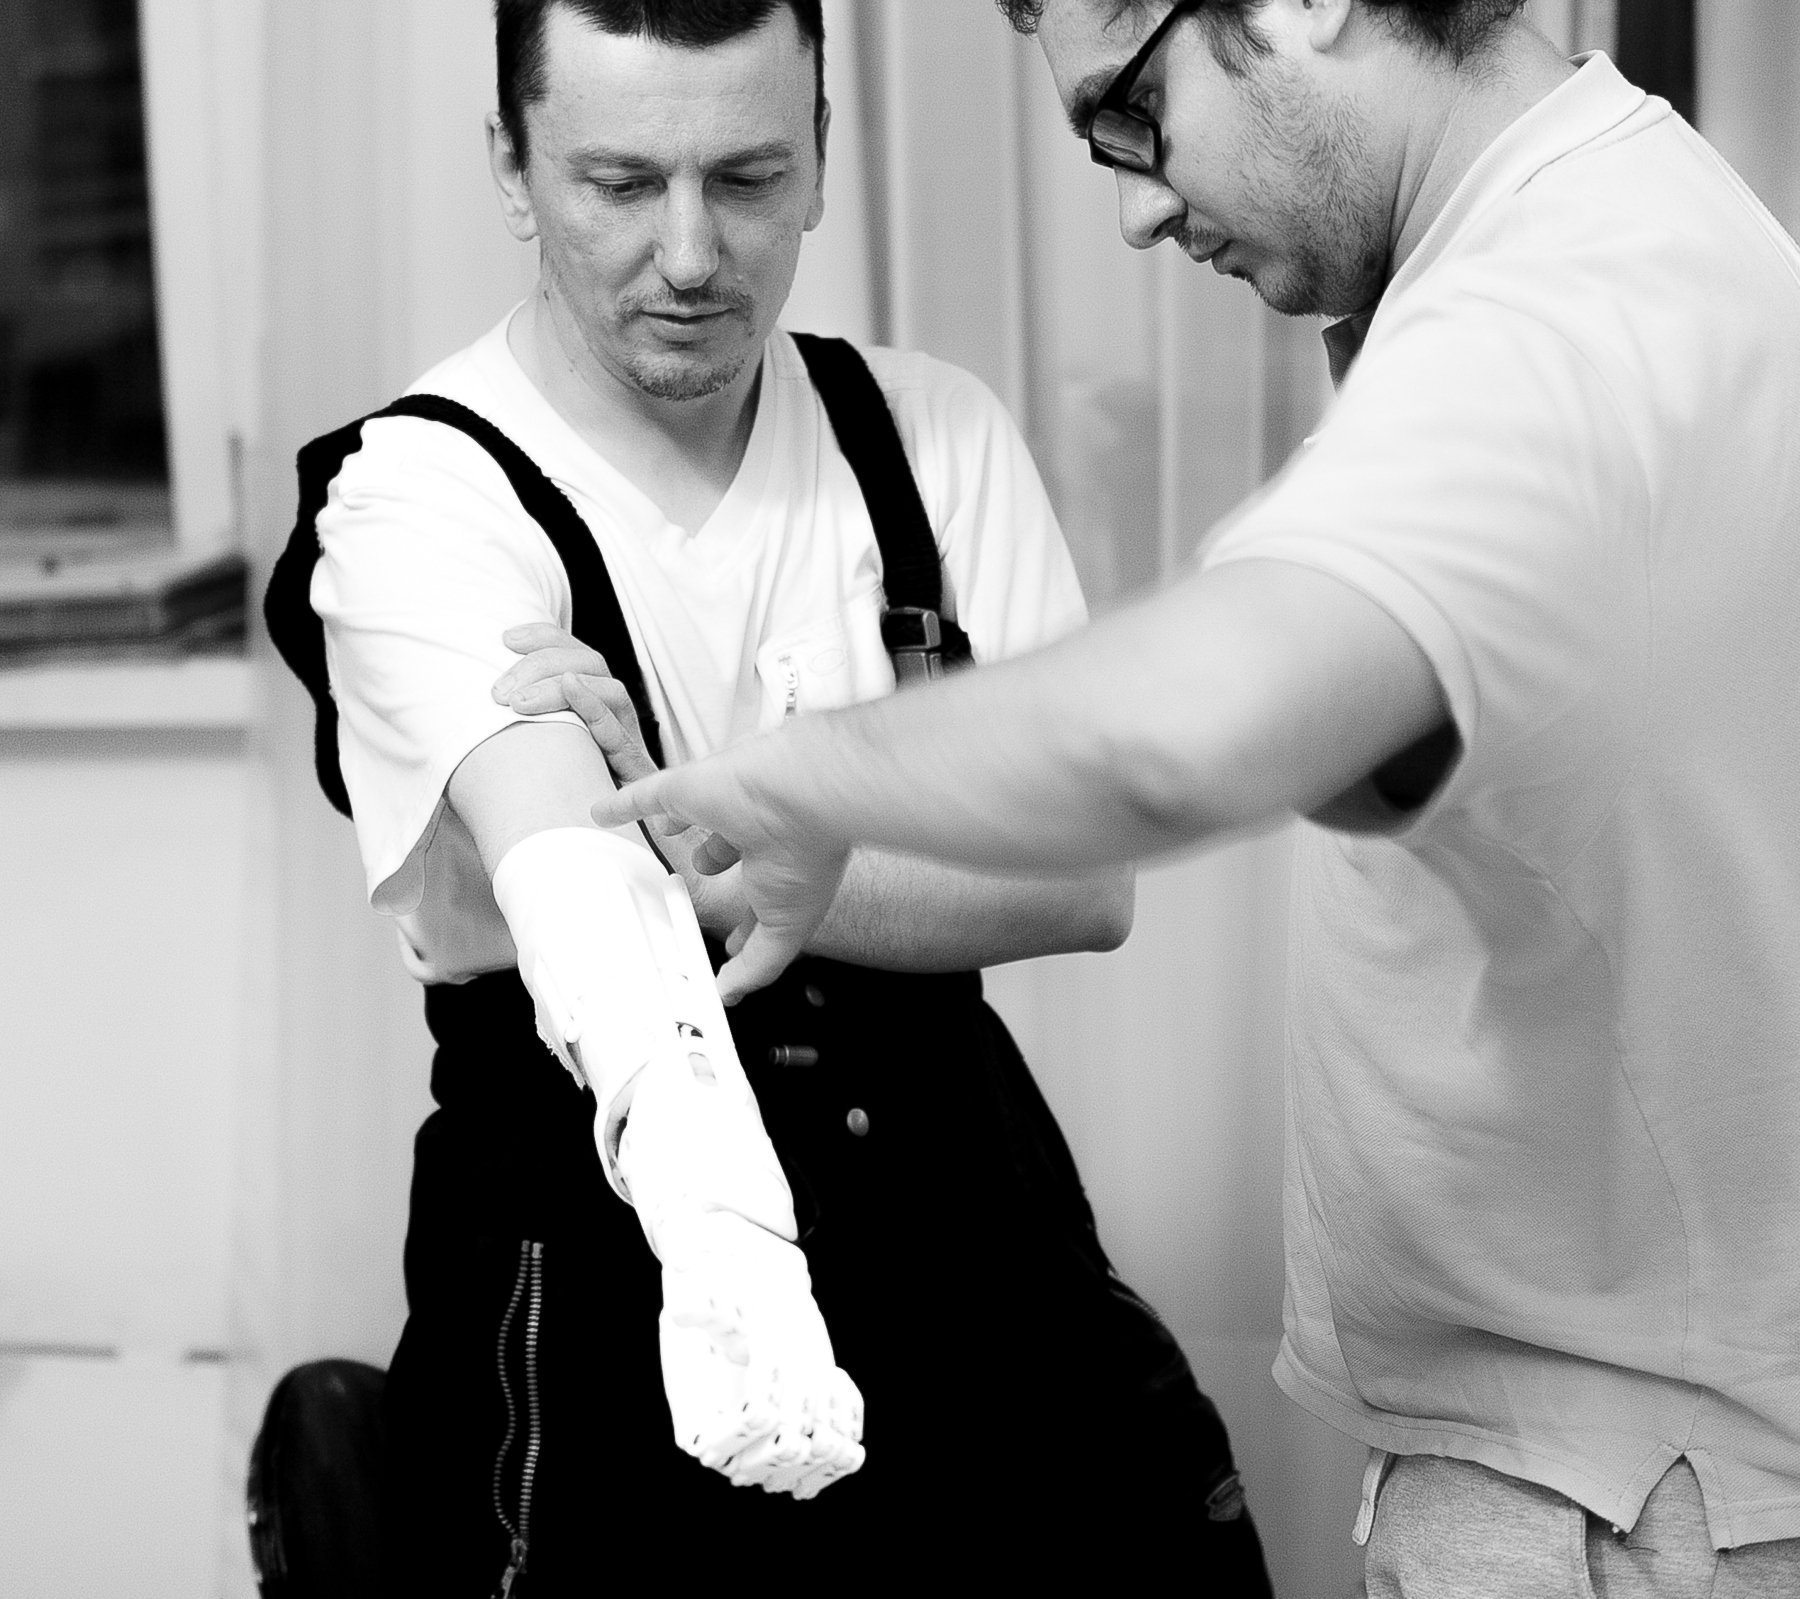 Lyashko (R) and a patient with the MaxBionic prosthesis